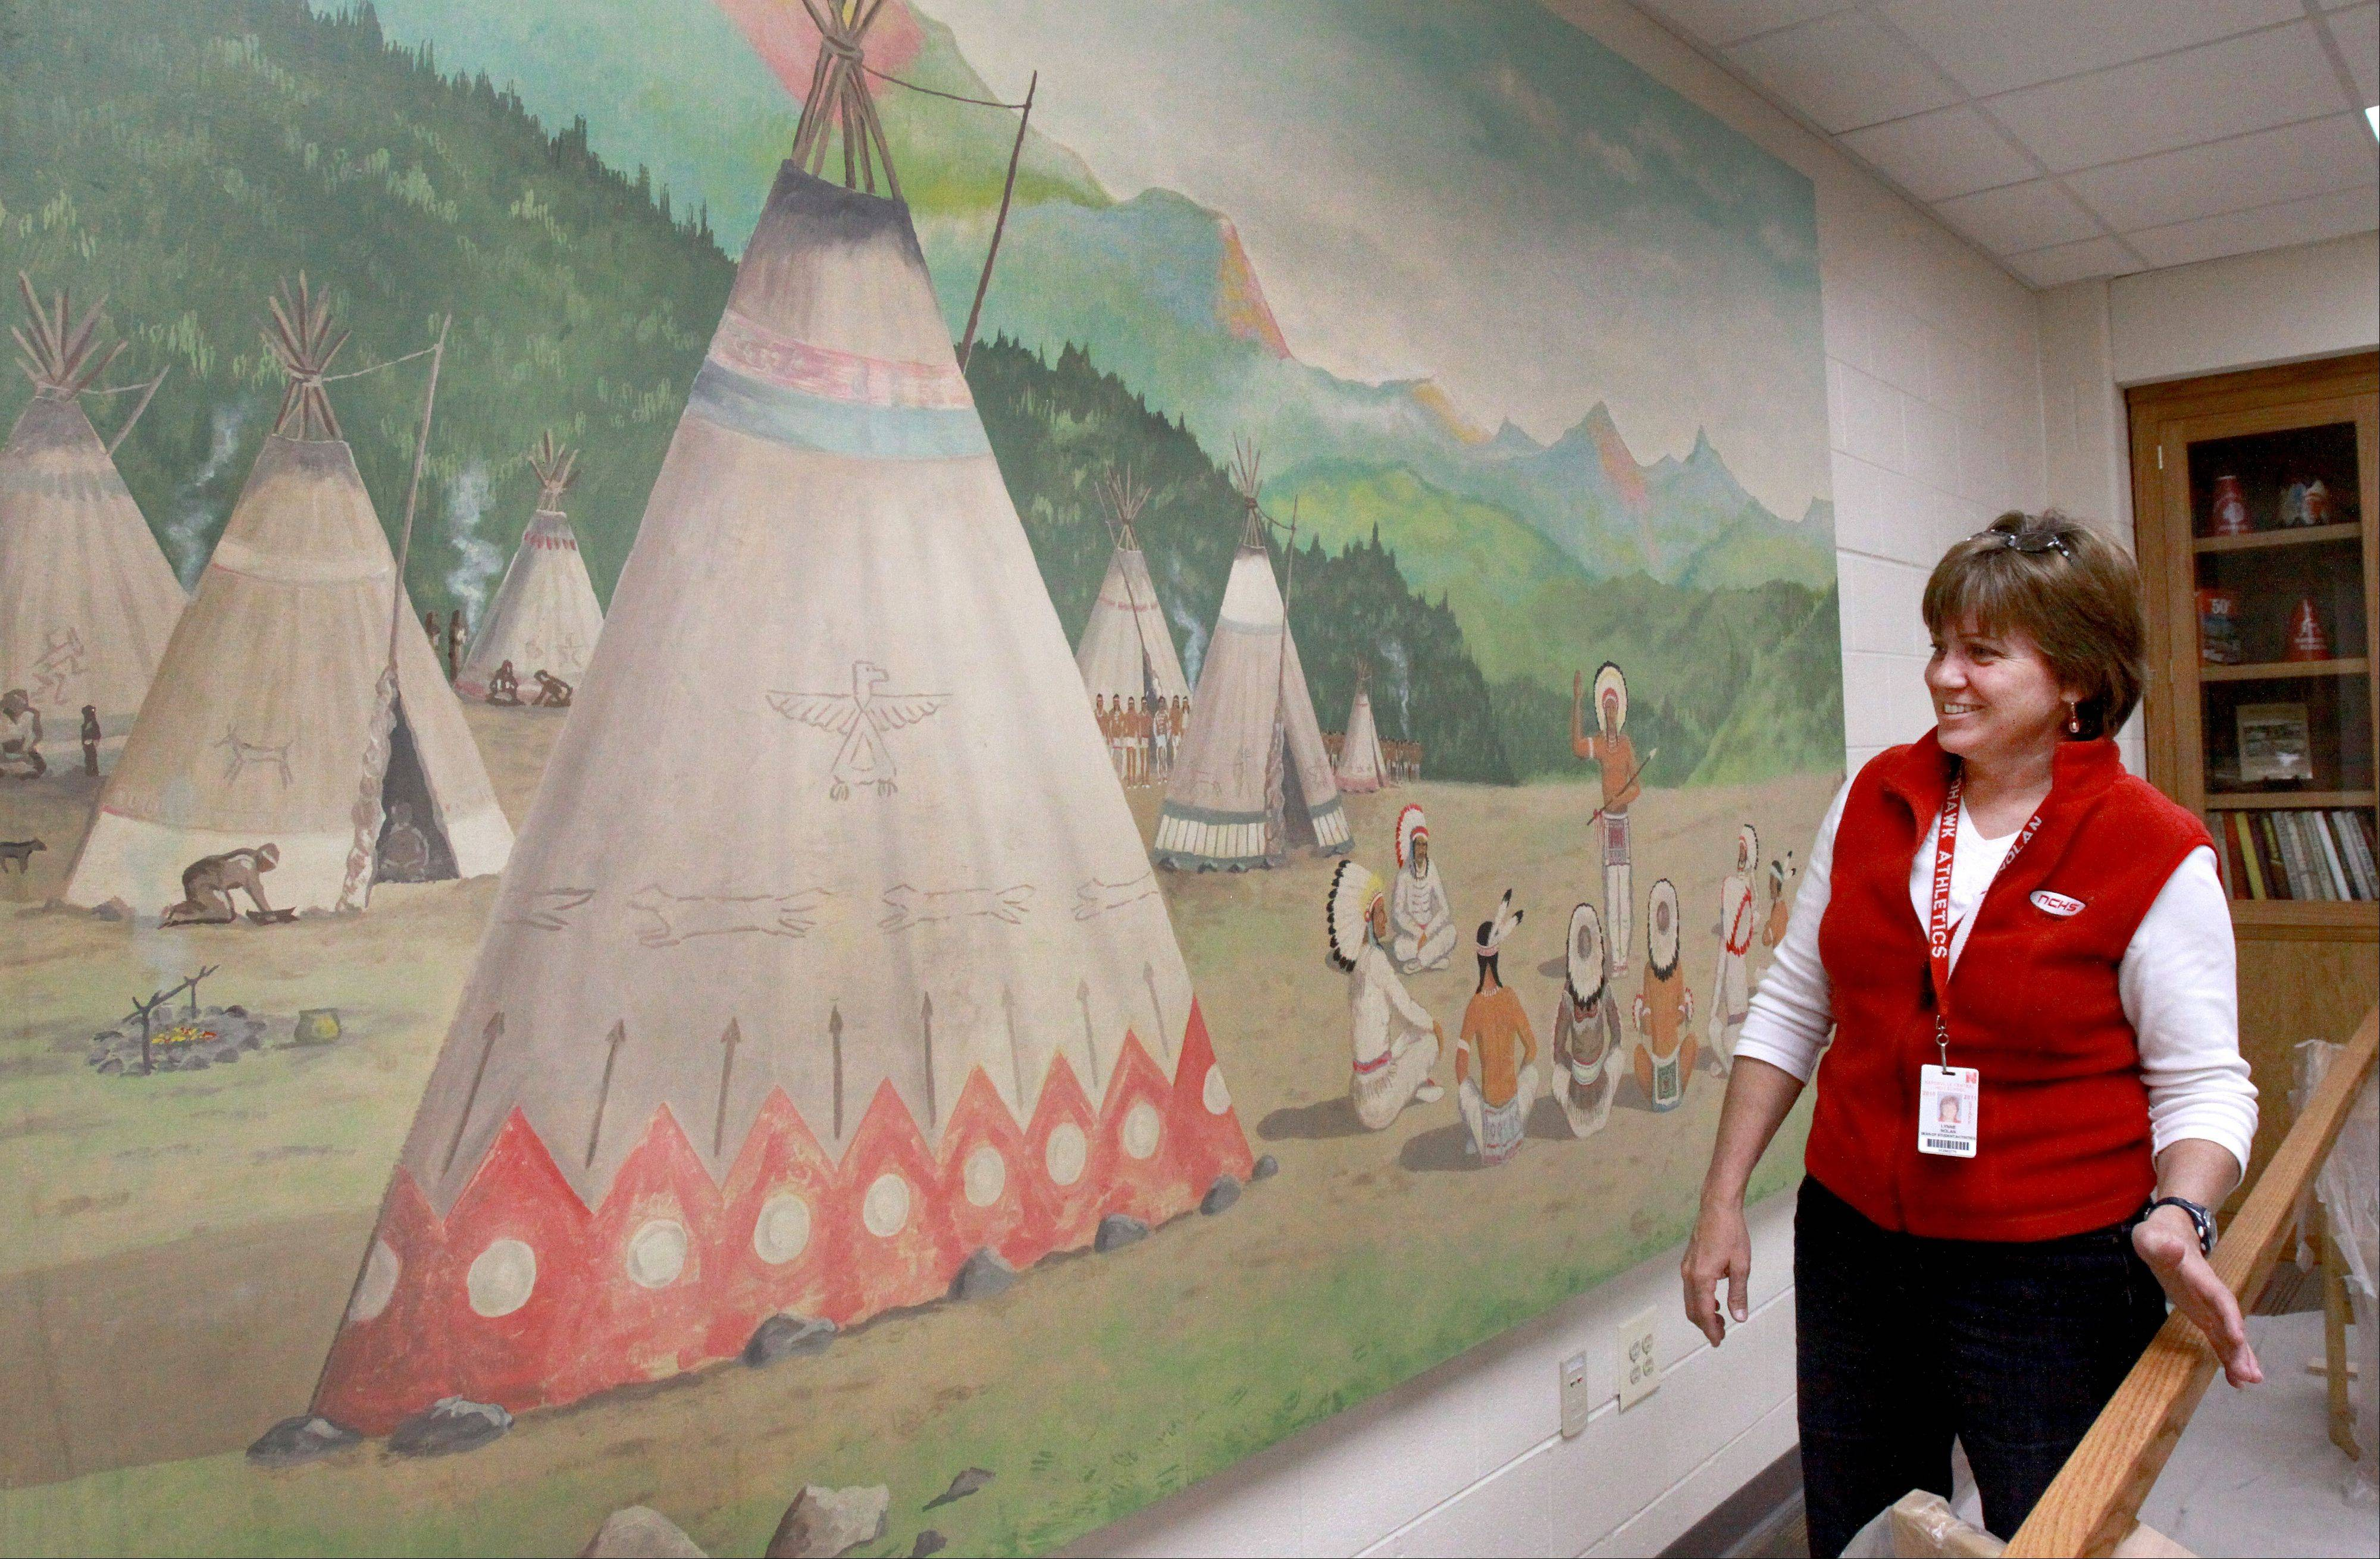 Lynne Nolan, dean of student activities at Naperville Central High School, checks out a canvas mural that was rescued from the school's basement bathroom and has been restored.